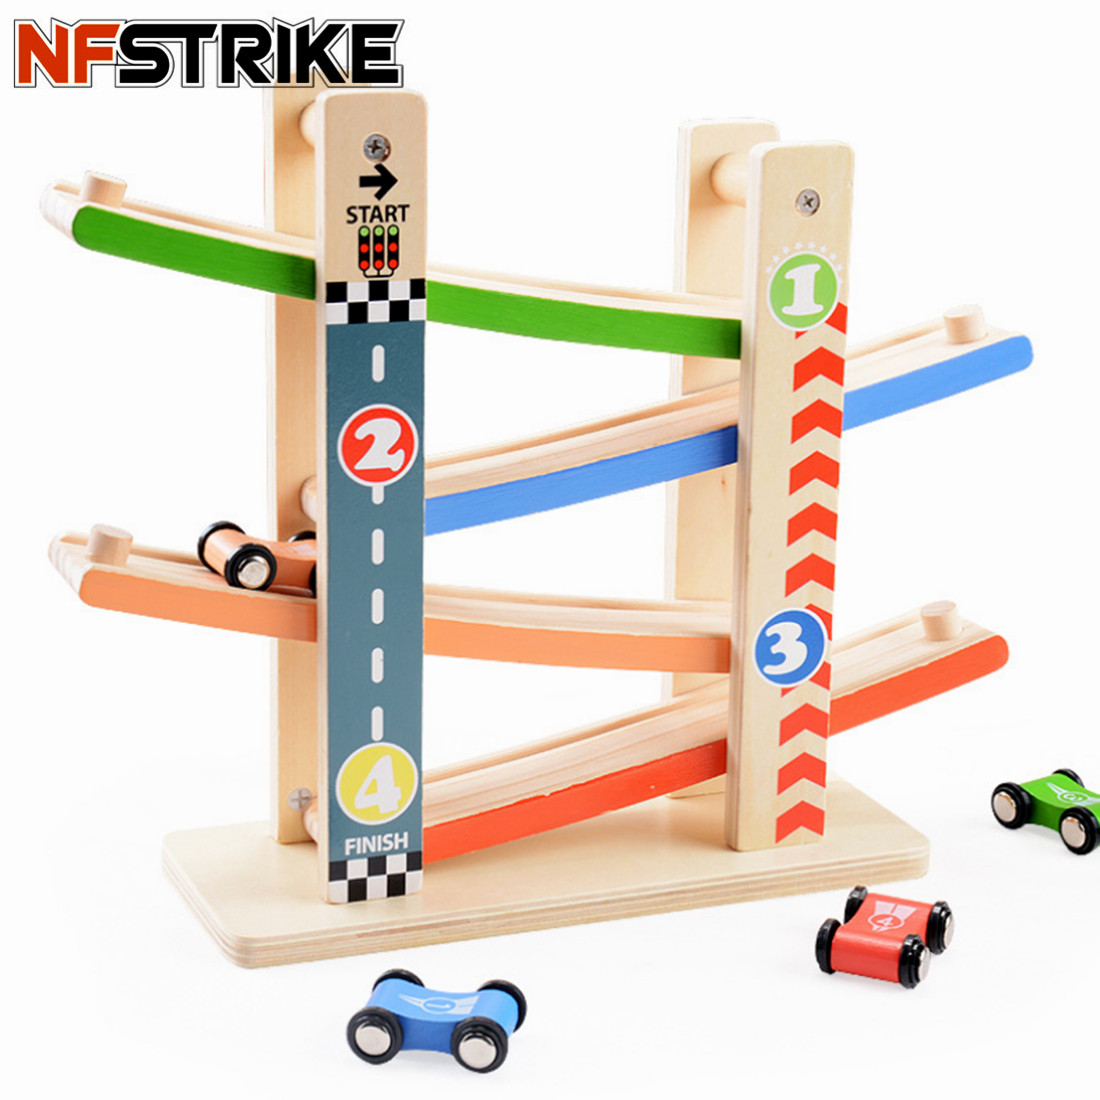 Toy Vehicles Wooden Urban Road Pattern Ramp Racer Track Inertial Sliding Track Car Playset With 4 Racers Toys For Kids Children